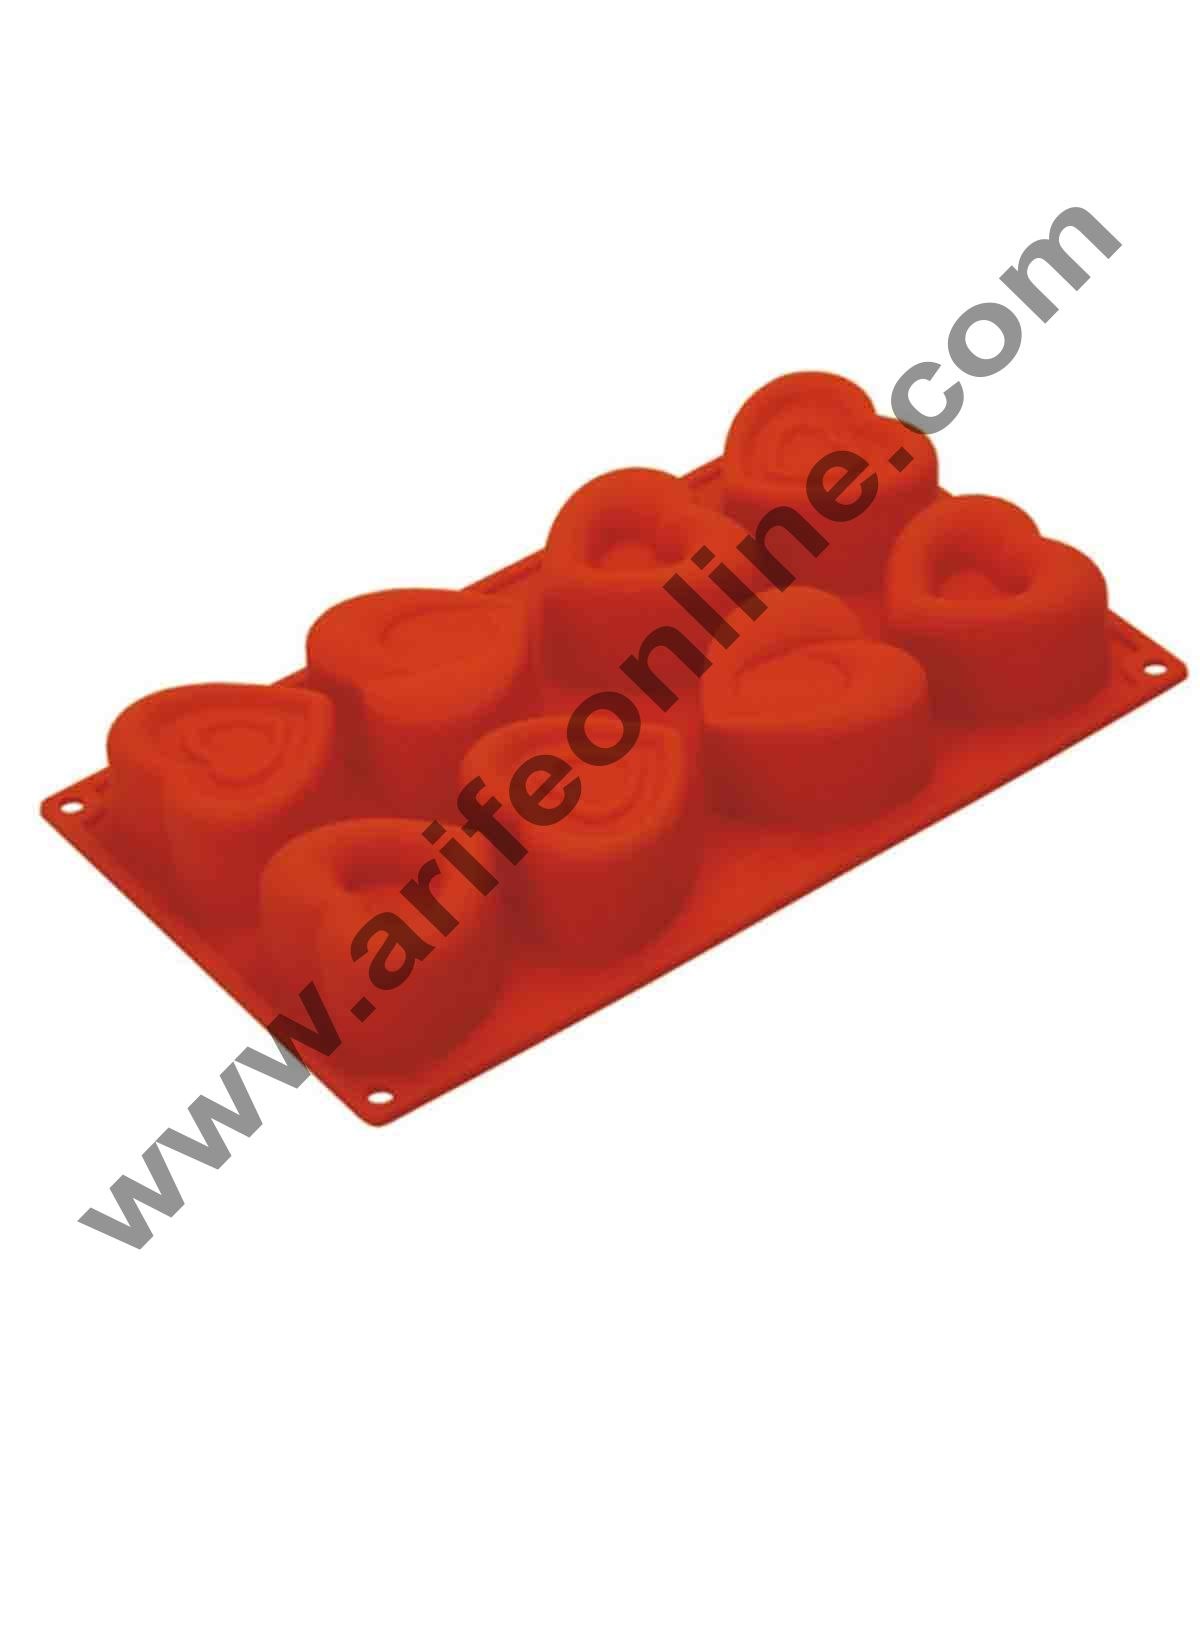 Cake Decor Silicon Little Heart Design Cake Mould Mousse Cake Mould Silicon Moulds